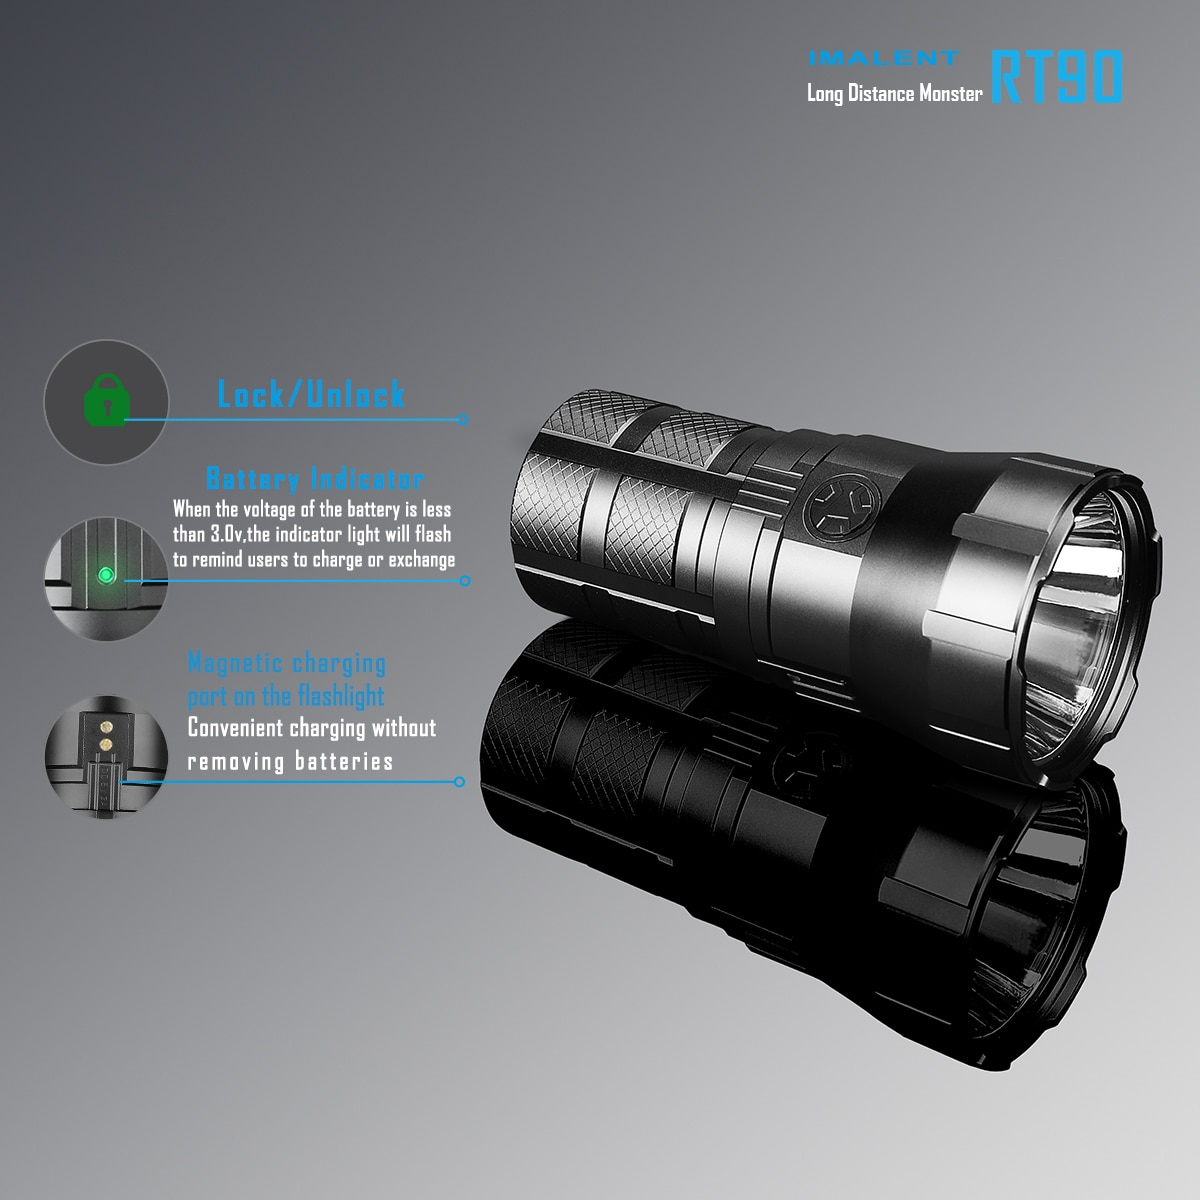 IMALENT RT90 Flashlight Powerful Light 4800LM Outdoor Lighting Torch LED Lantern Bright Waterproof Rechargeable 18500 Battery enlarge